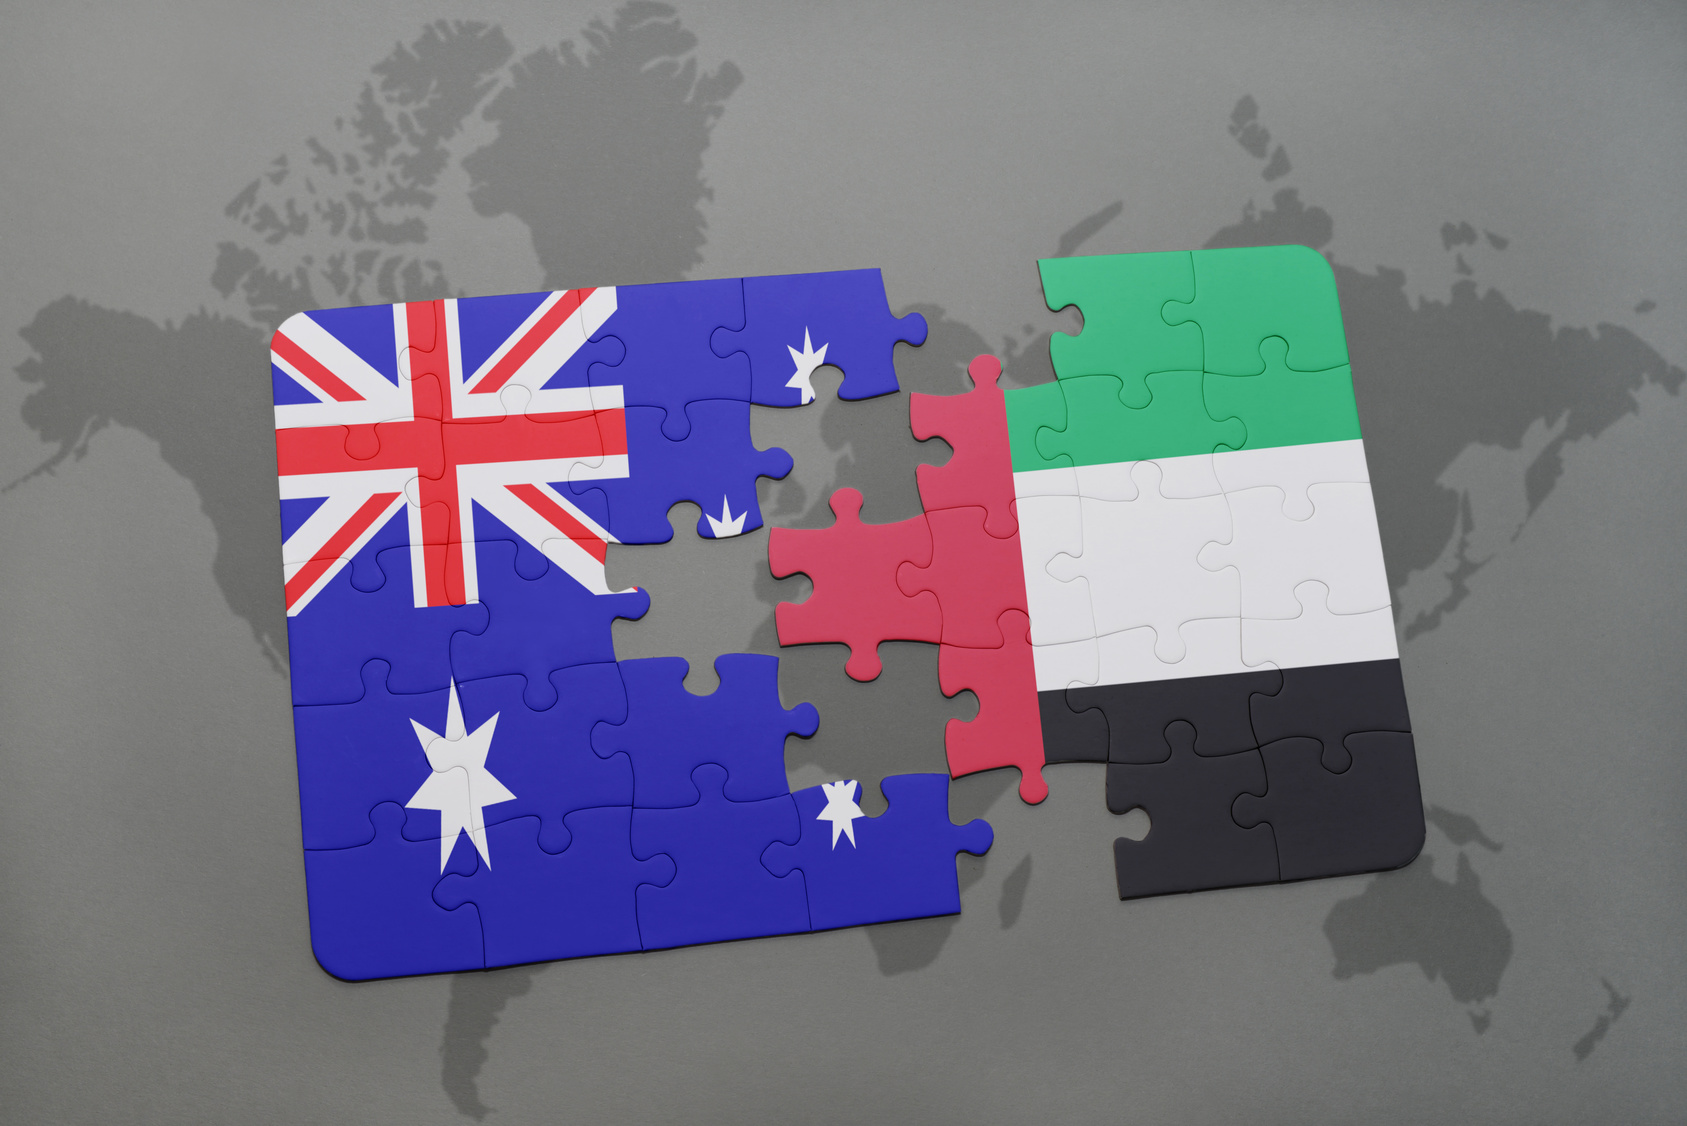 UAE is Australia's largest trading partner in Middle East, with two-way goods and services trade worth $8.8 billion in 2015